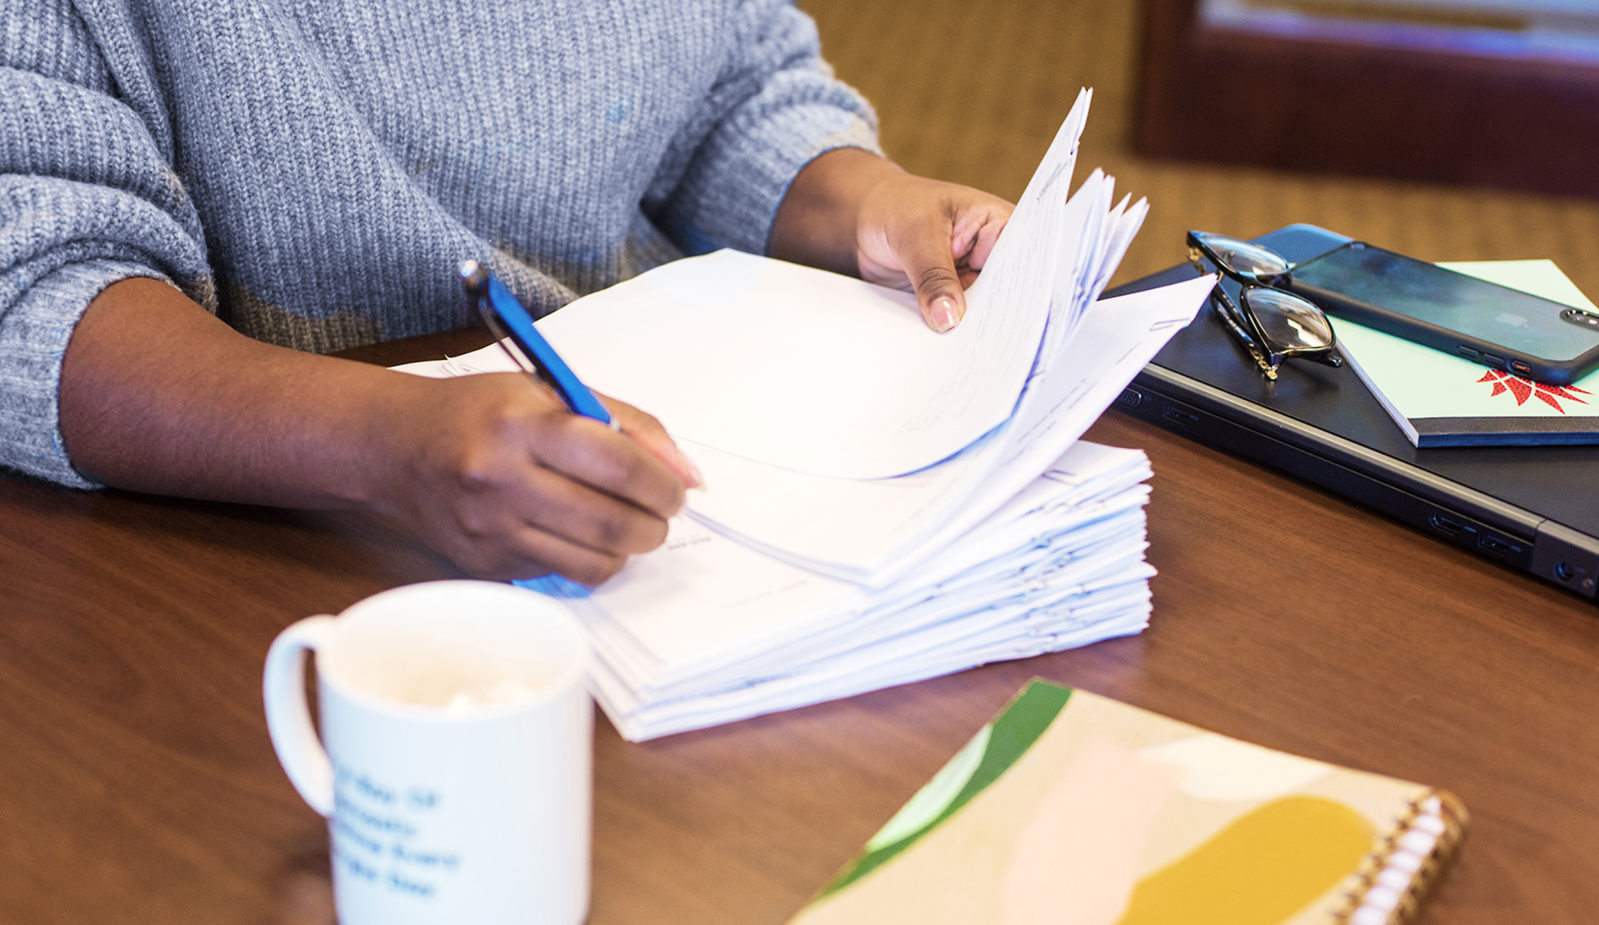 Woman writing on stack of paper